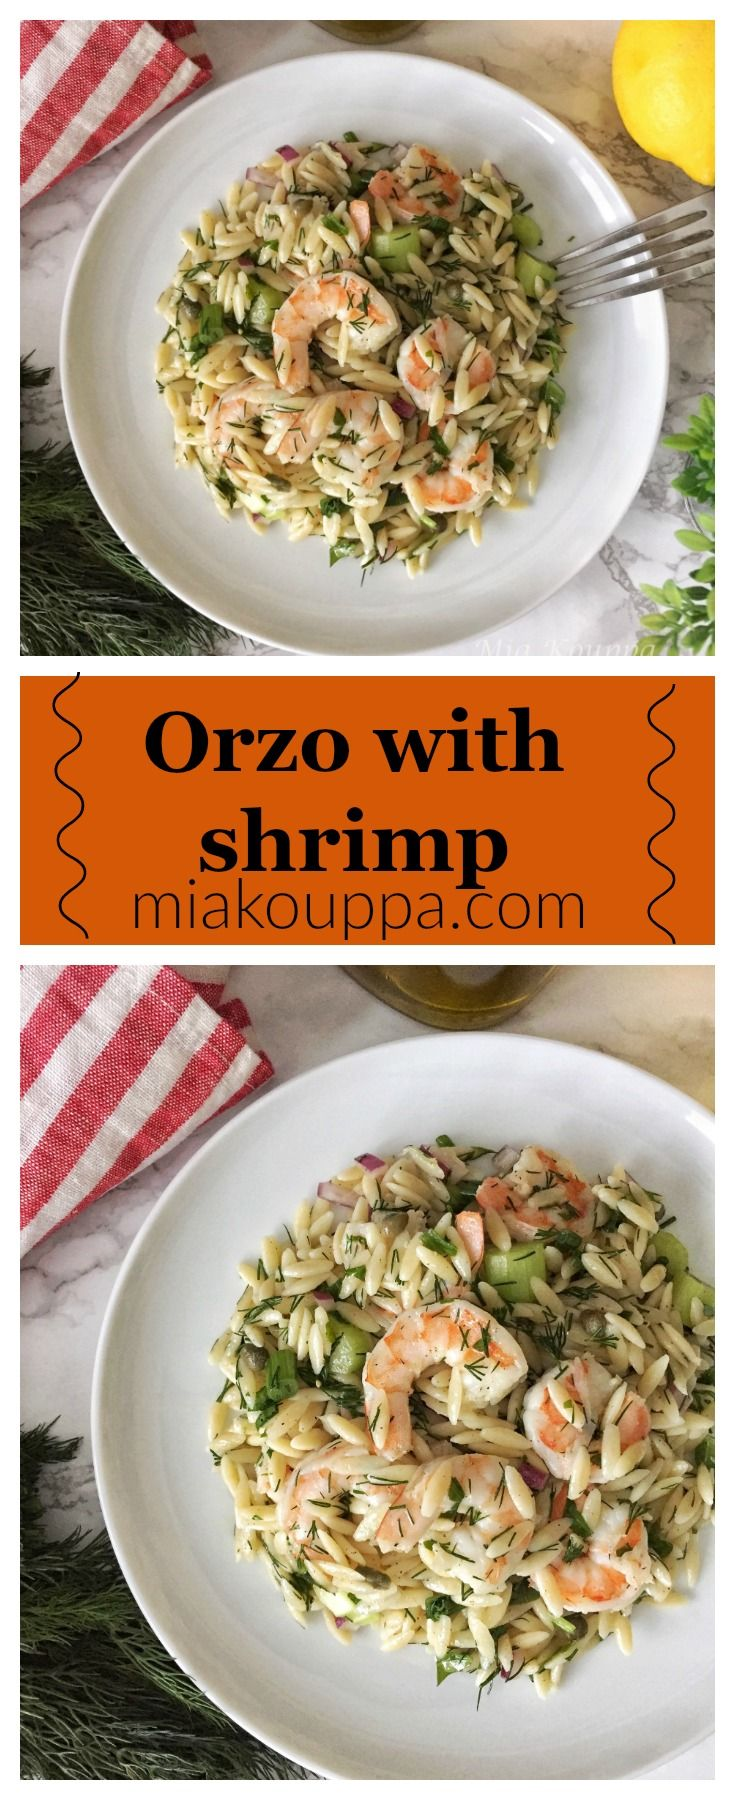 Orzo with shrimp (Κριθαράκι με γαρίδες).  A simple and delicious recipe, that you can make for either dinner, or side salad.  #shrimp #easyrecipes #nistisima